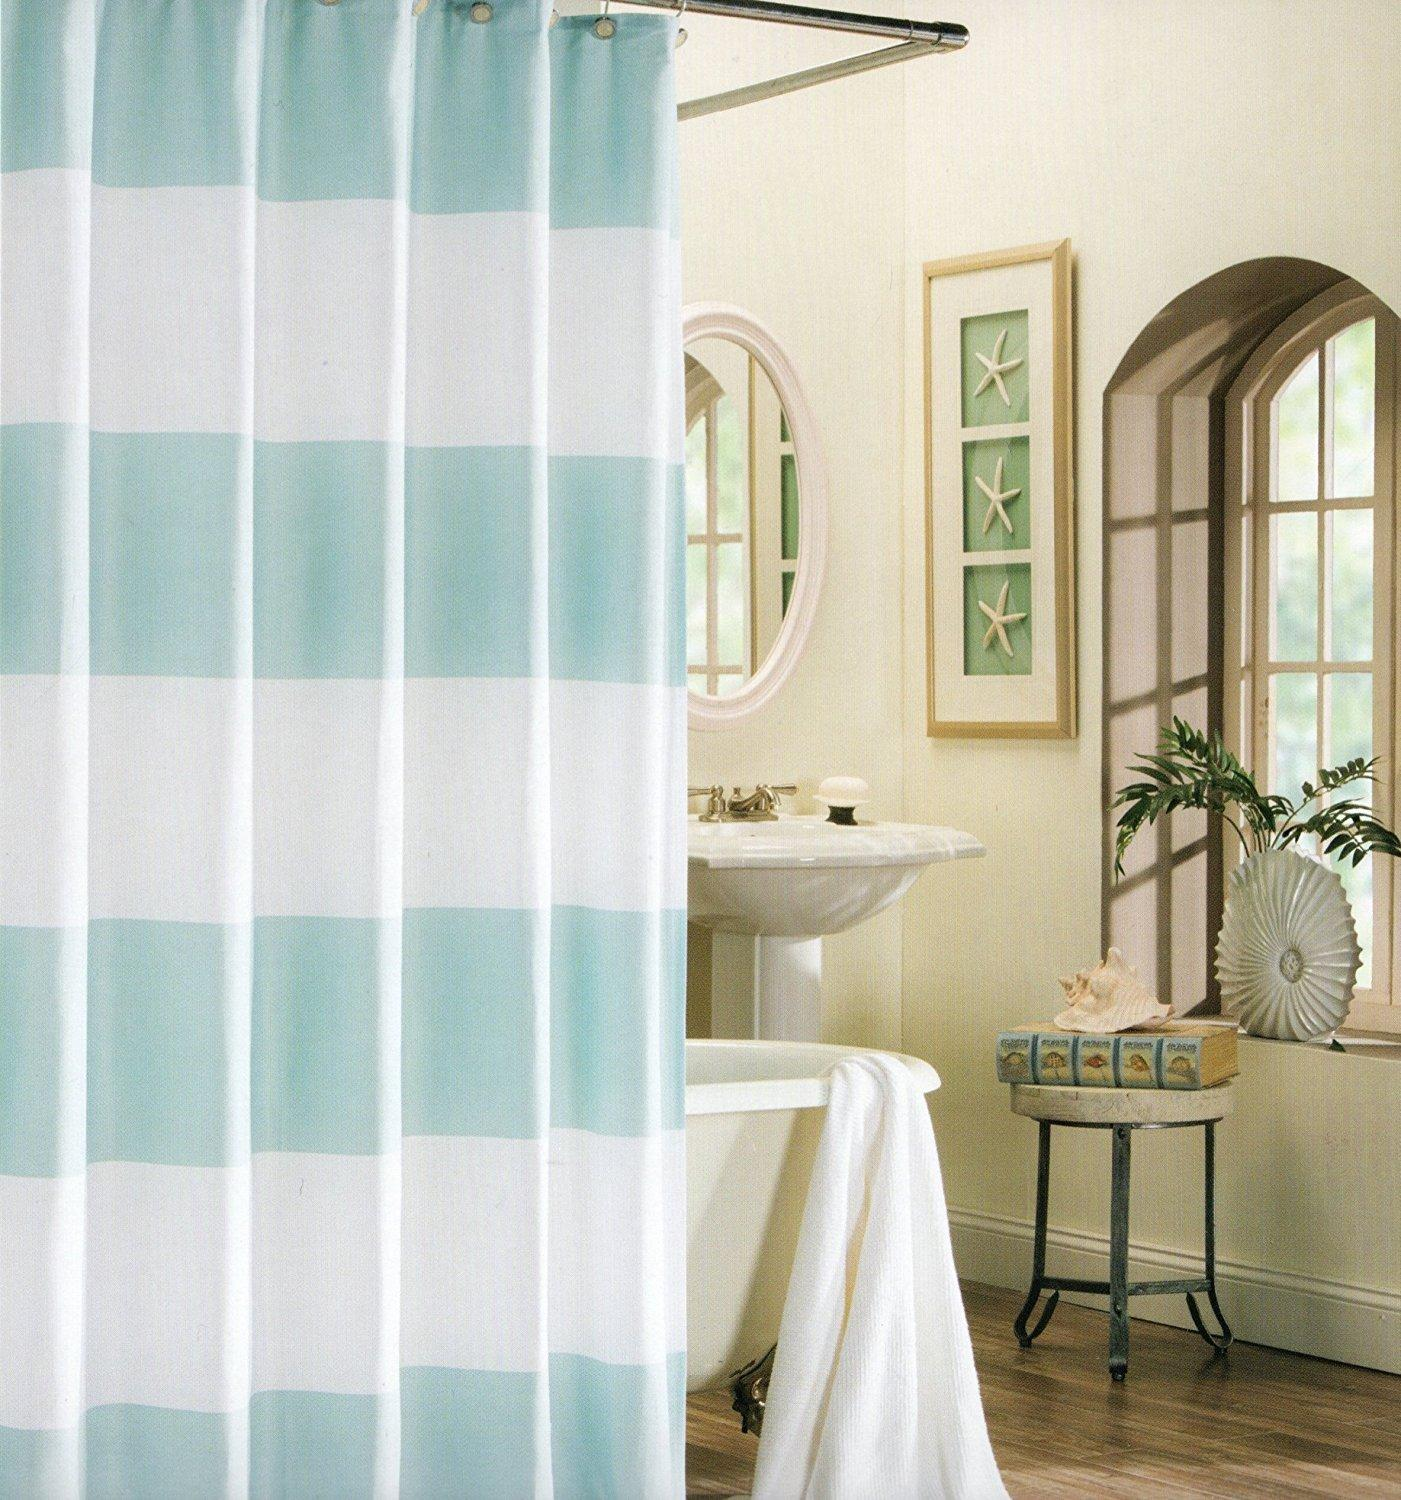 2018 Memory Home 100 Polyester Shower Curtain Wide Stripes Fabric Turquoise Navy Blue Beige Turquoise66x72inch From Sophine11